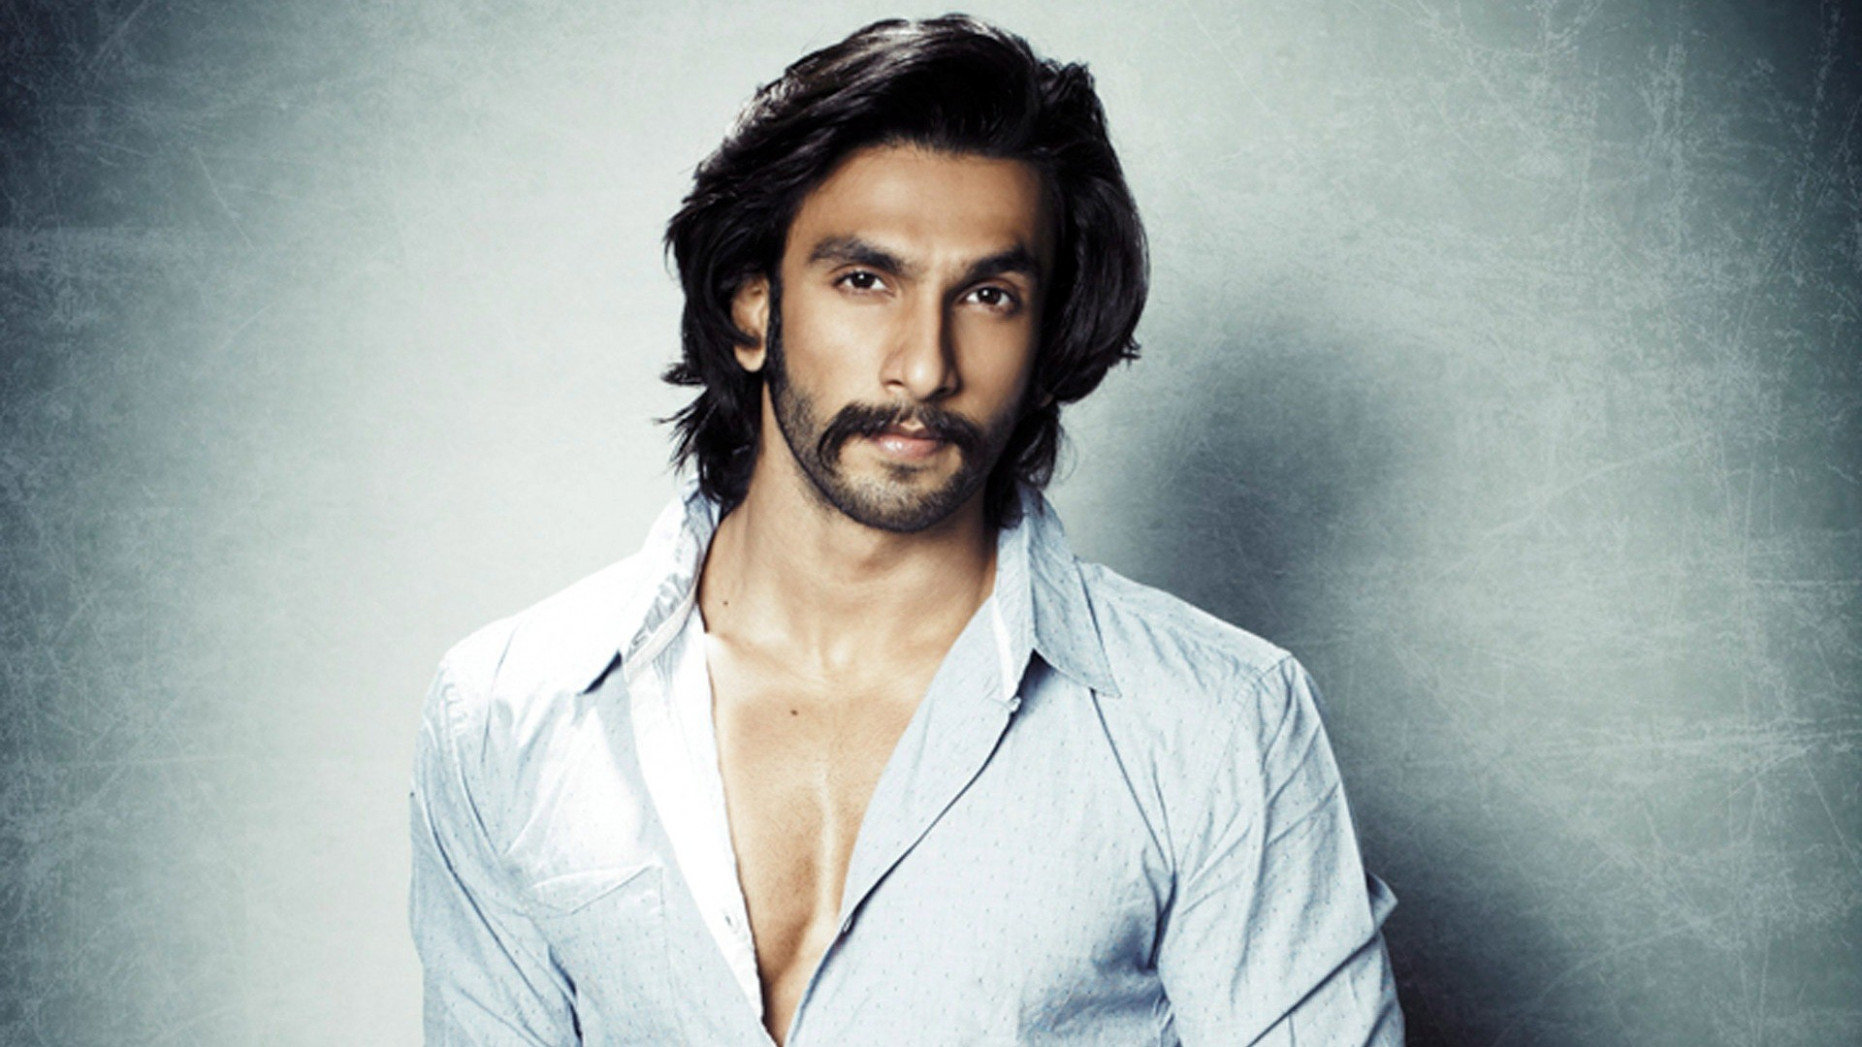 New Latest HD Images of Ranveer Singh Bollywood Actor ...